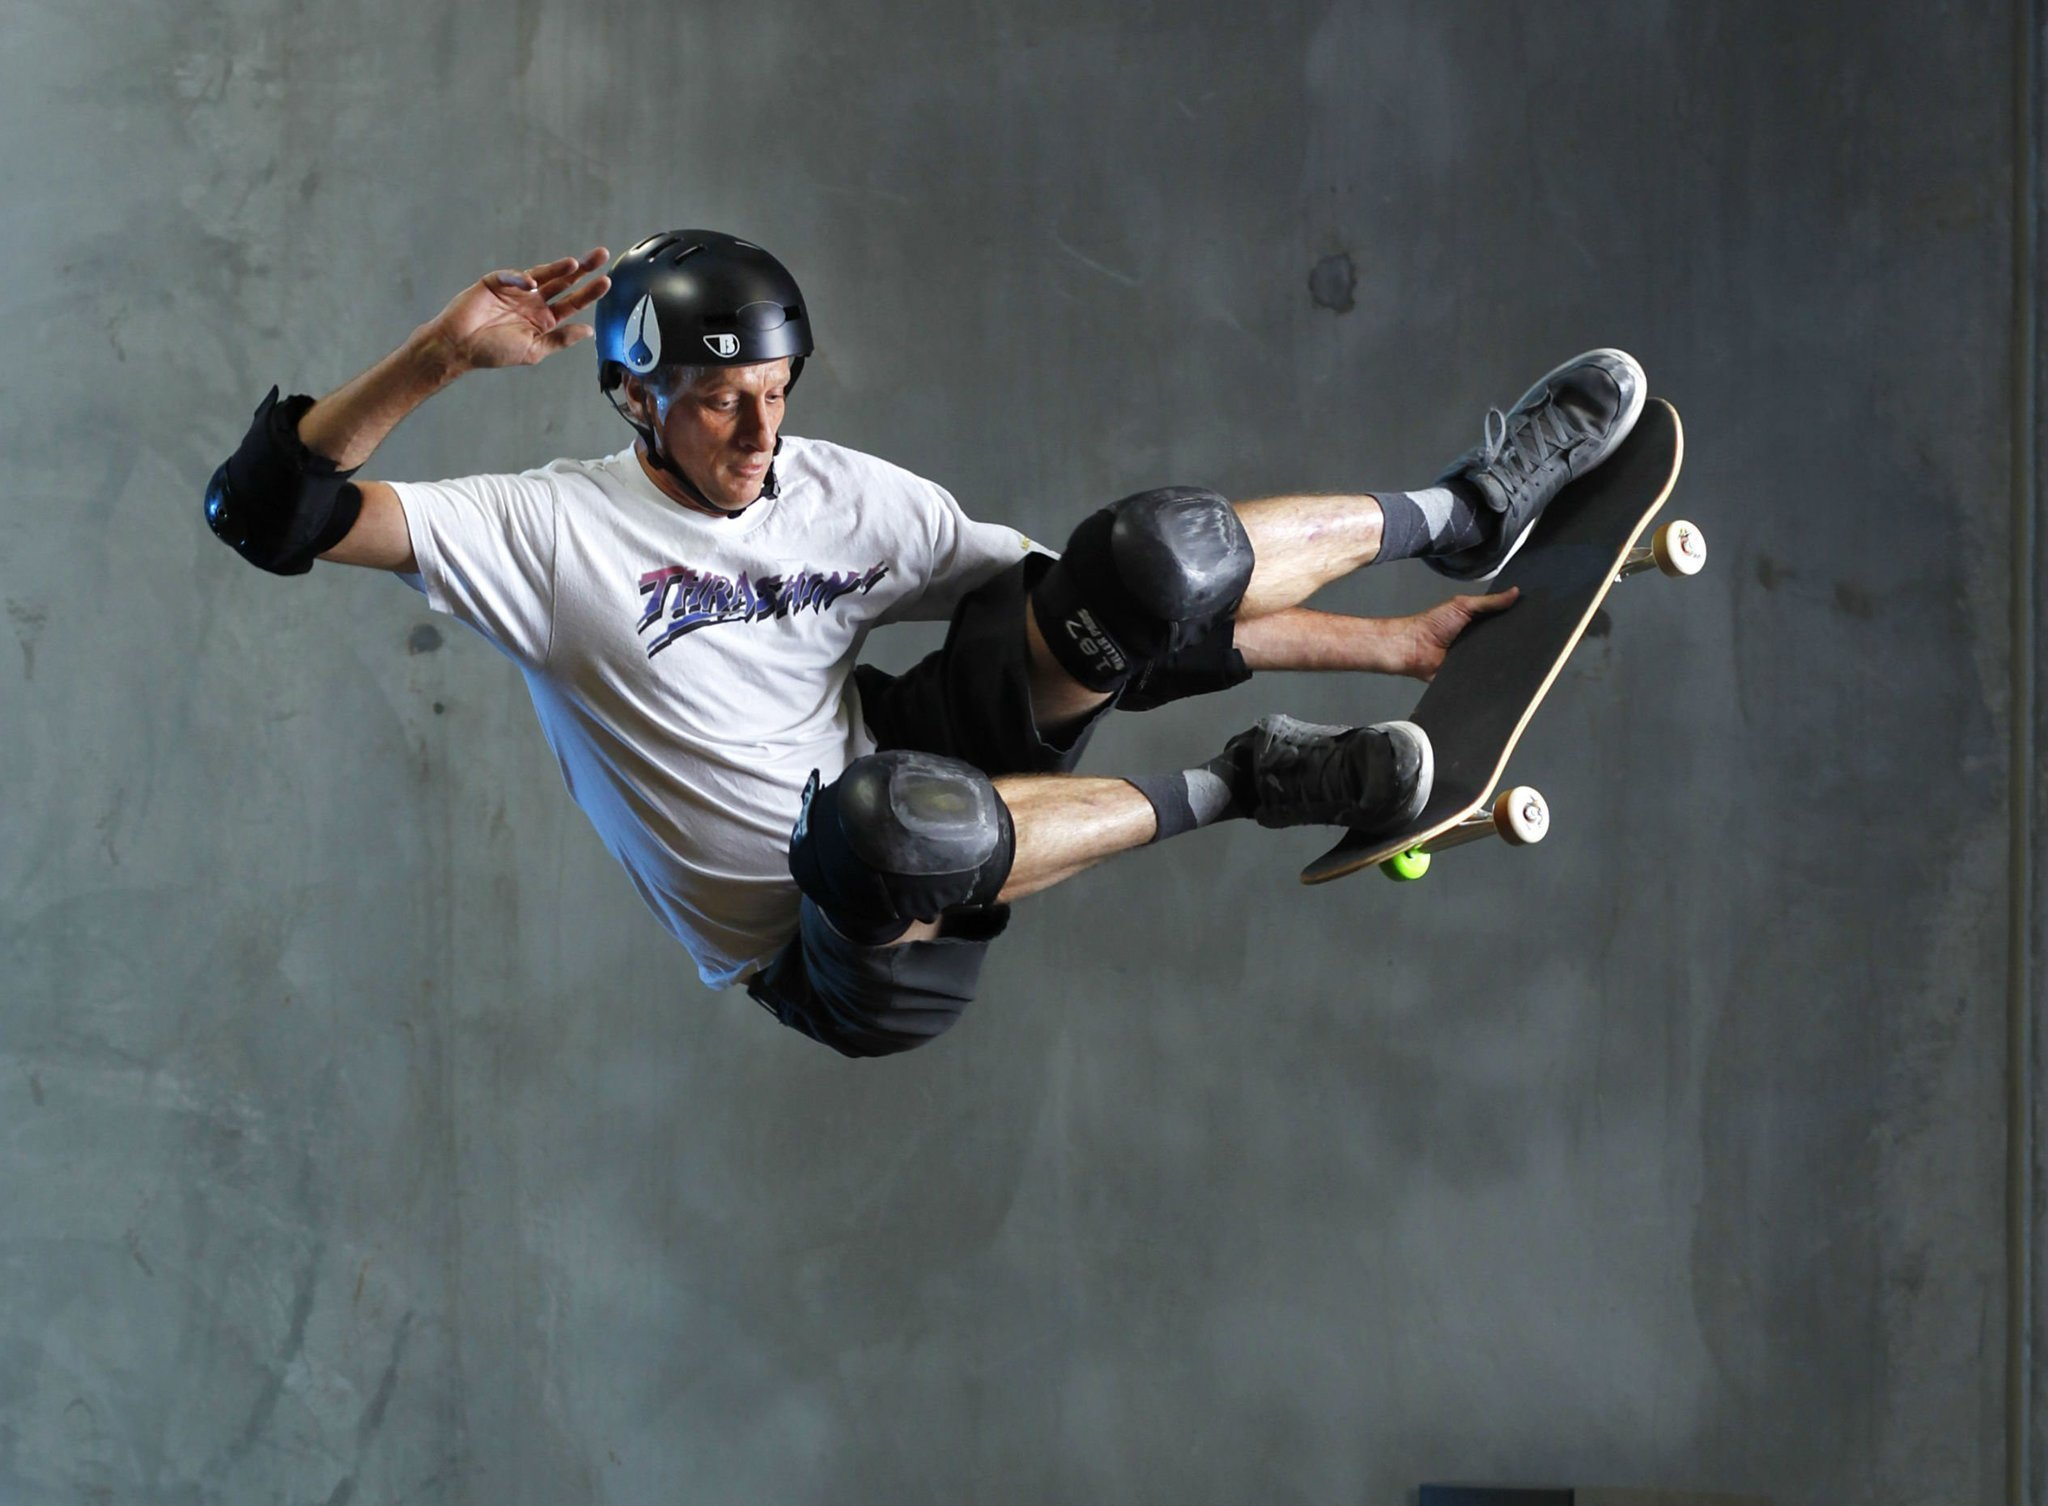 Tony Hawk has transformed skateboarding into global culture - The ...